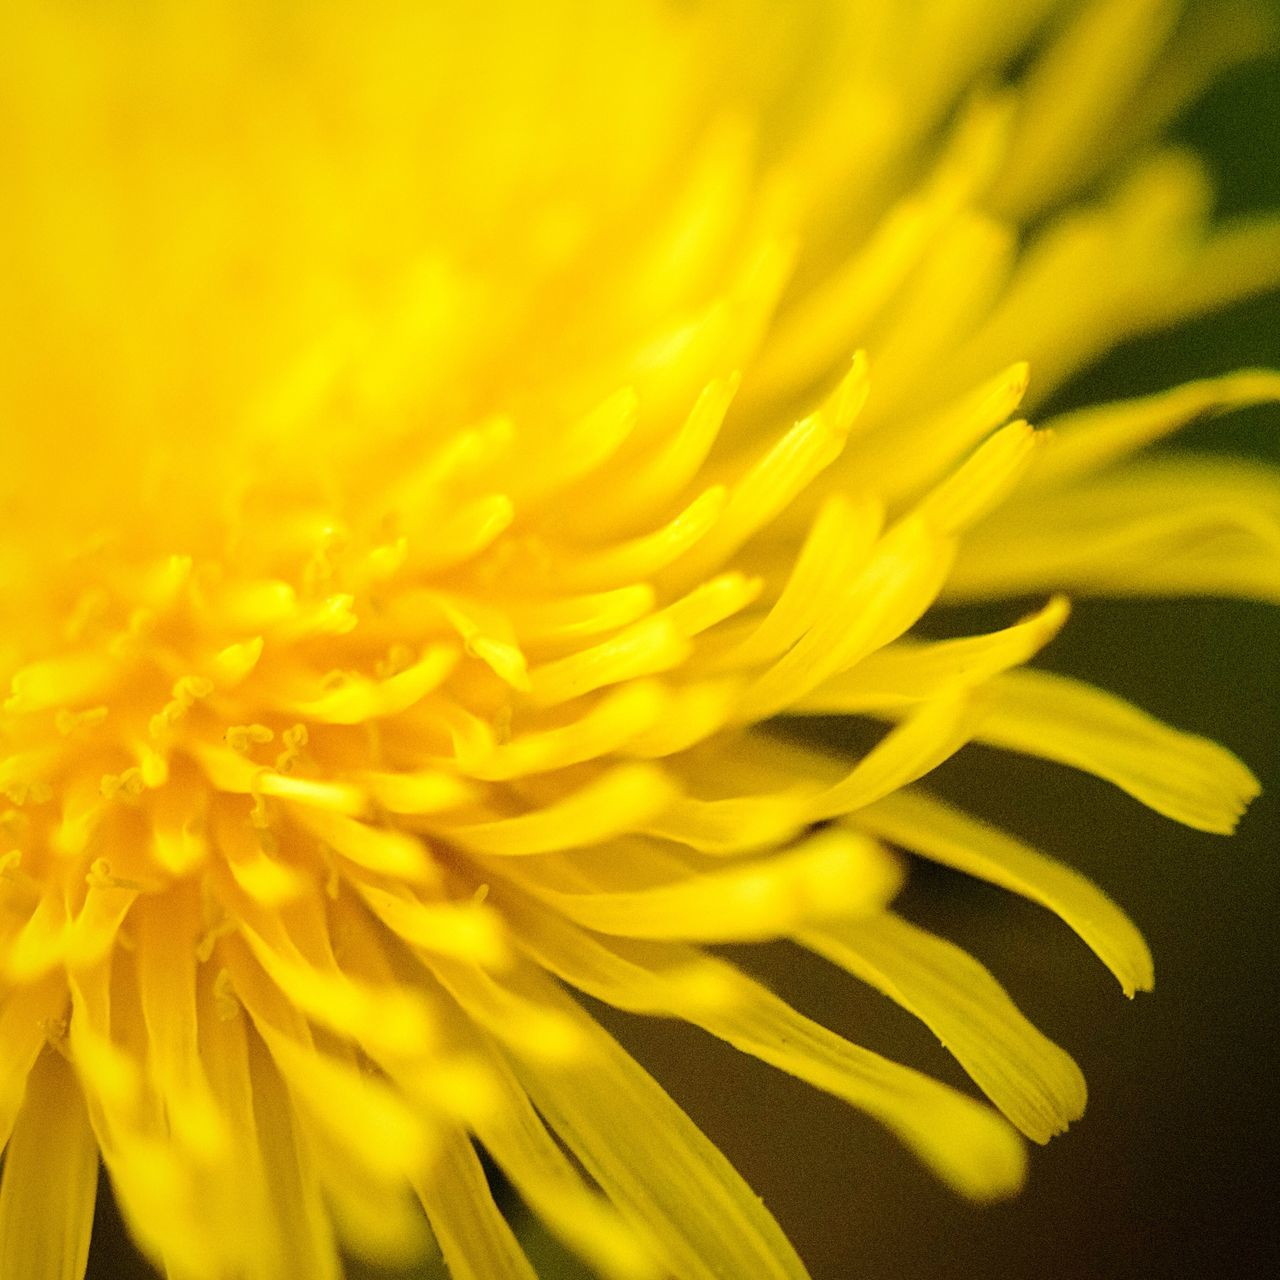 Flower Yellow Fragility Petal Freshness Growth Beauty In Nature Nature Close-up Full Frame No People Flower Head Plant Backgrounds Day Blooming Outdoors Macro Urban Nature Summer Yellow Summertime